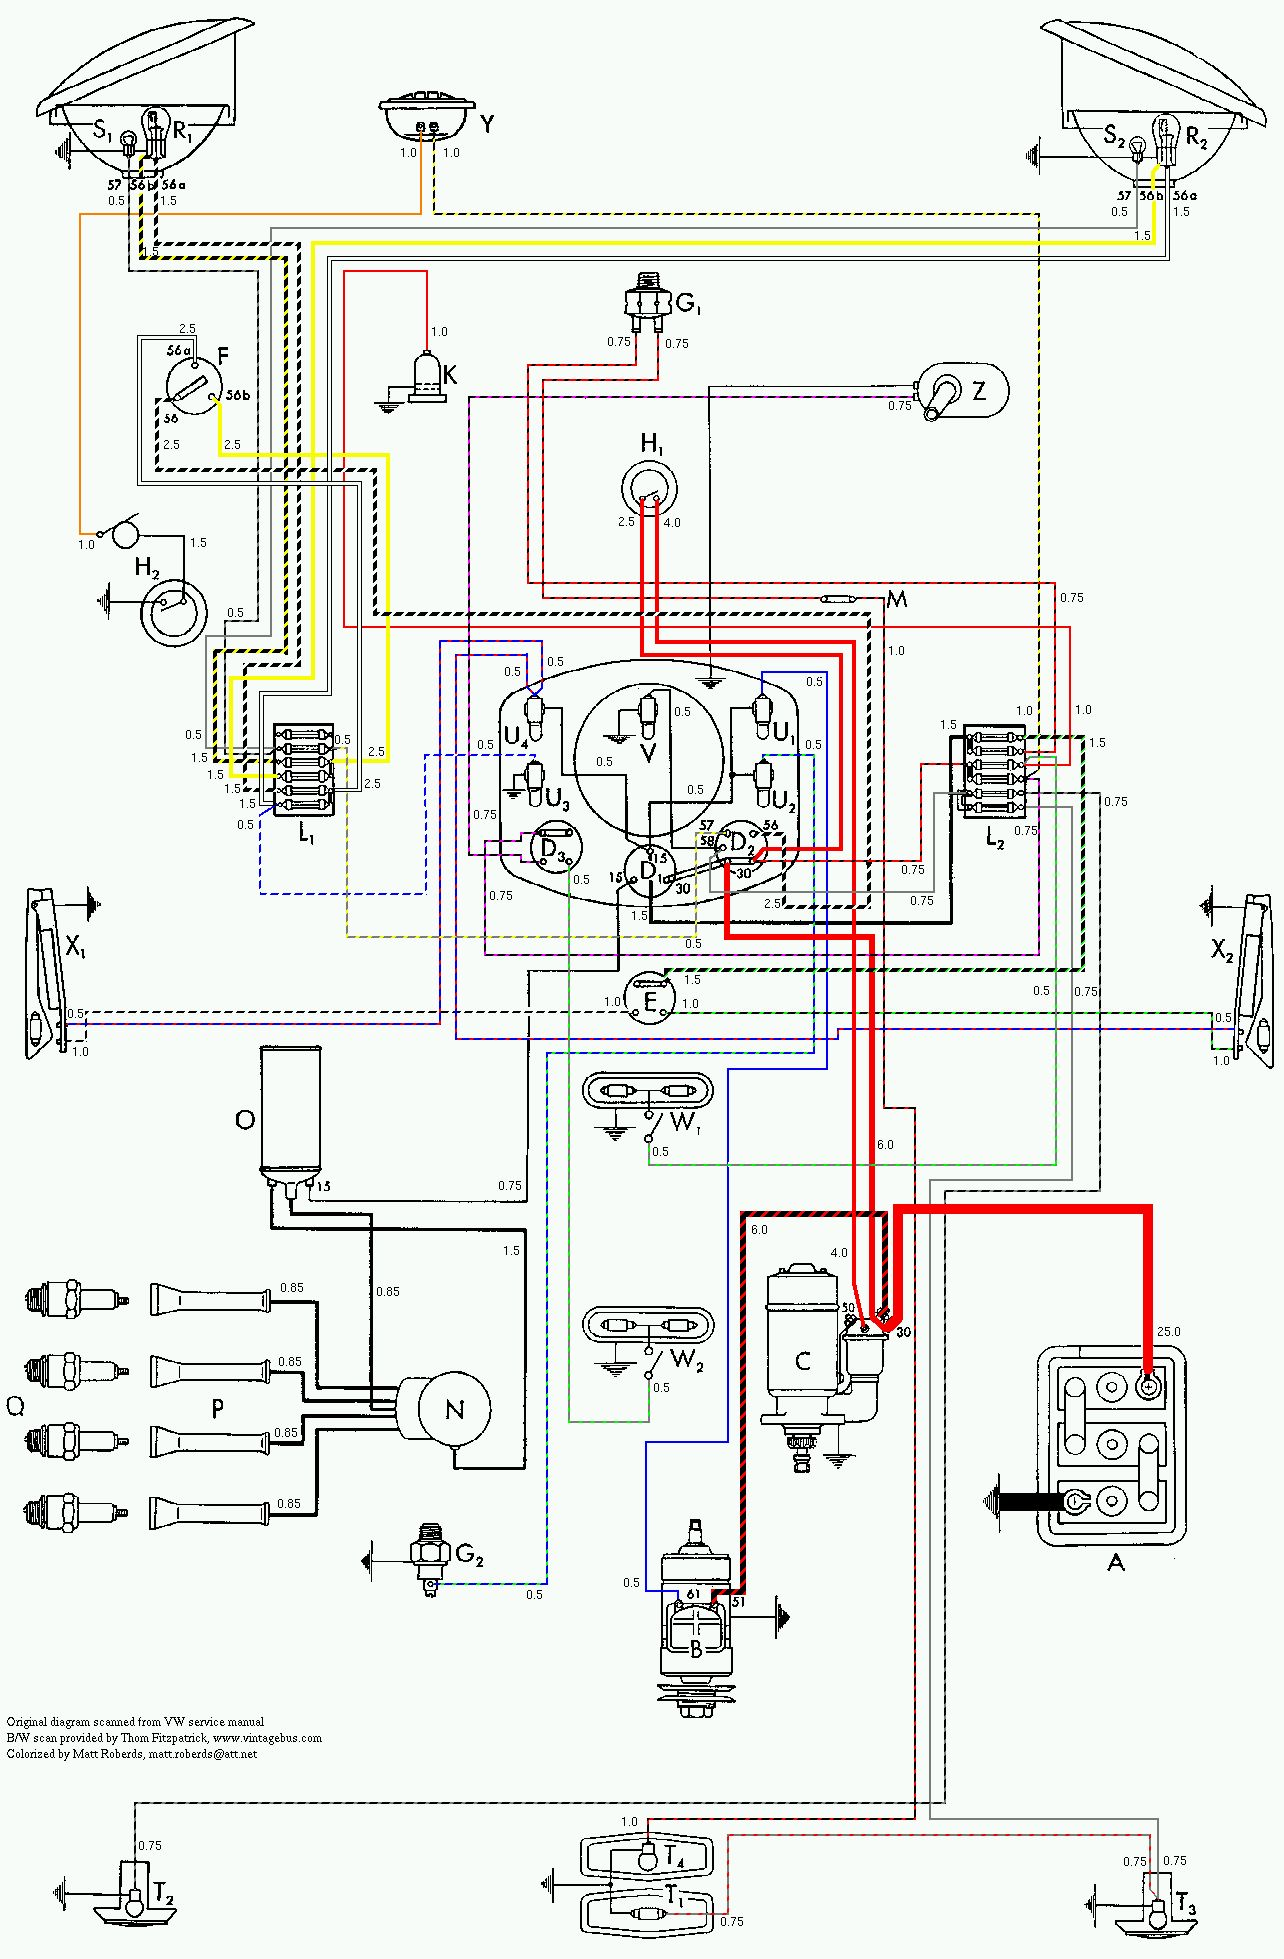 bus 53 color vintagebus com vw bus (and other) wiring diagrams 12 Volt Relay Wiring Diagrams at gsmx.co